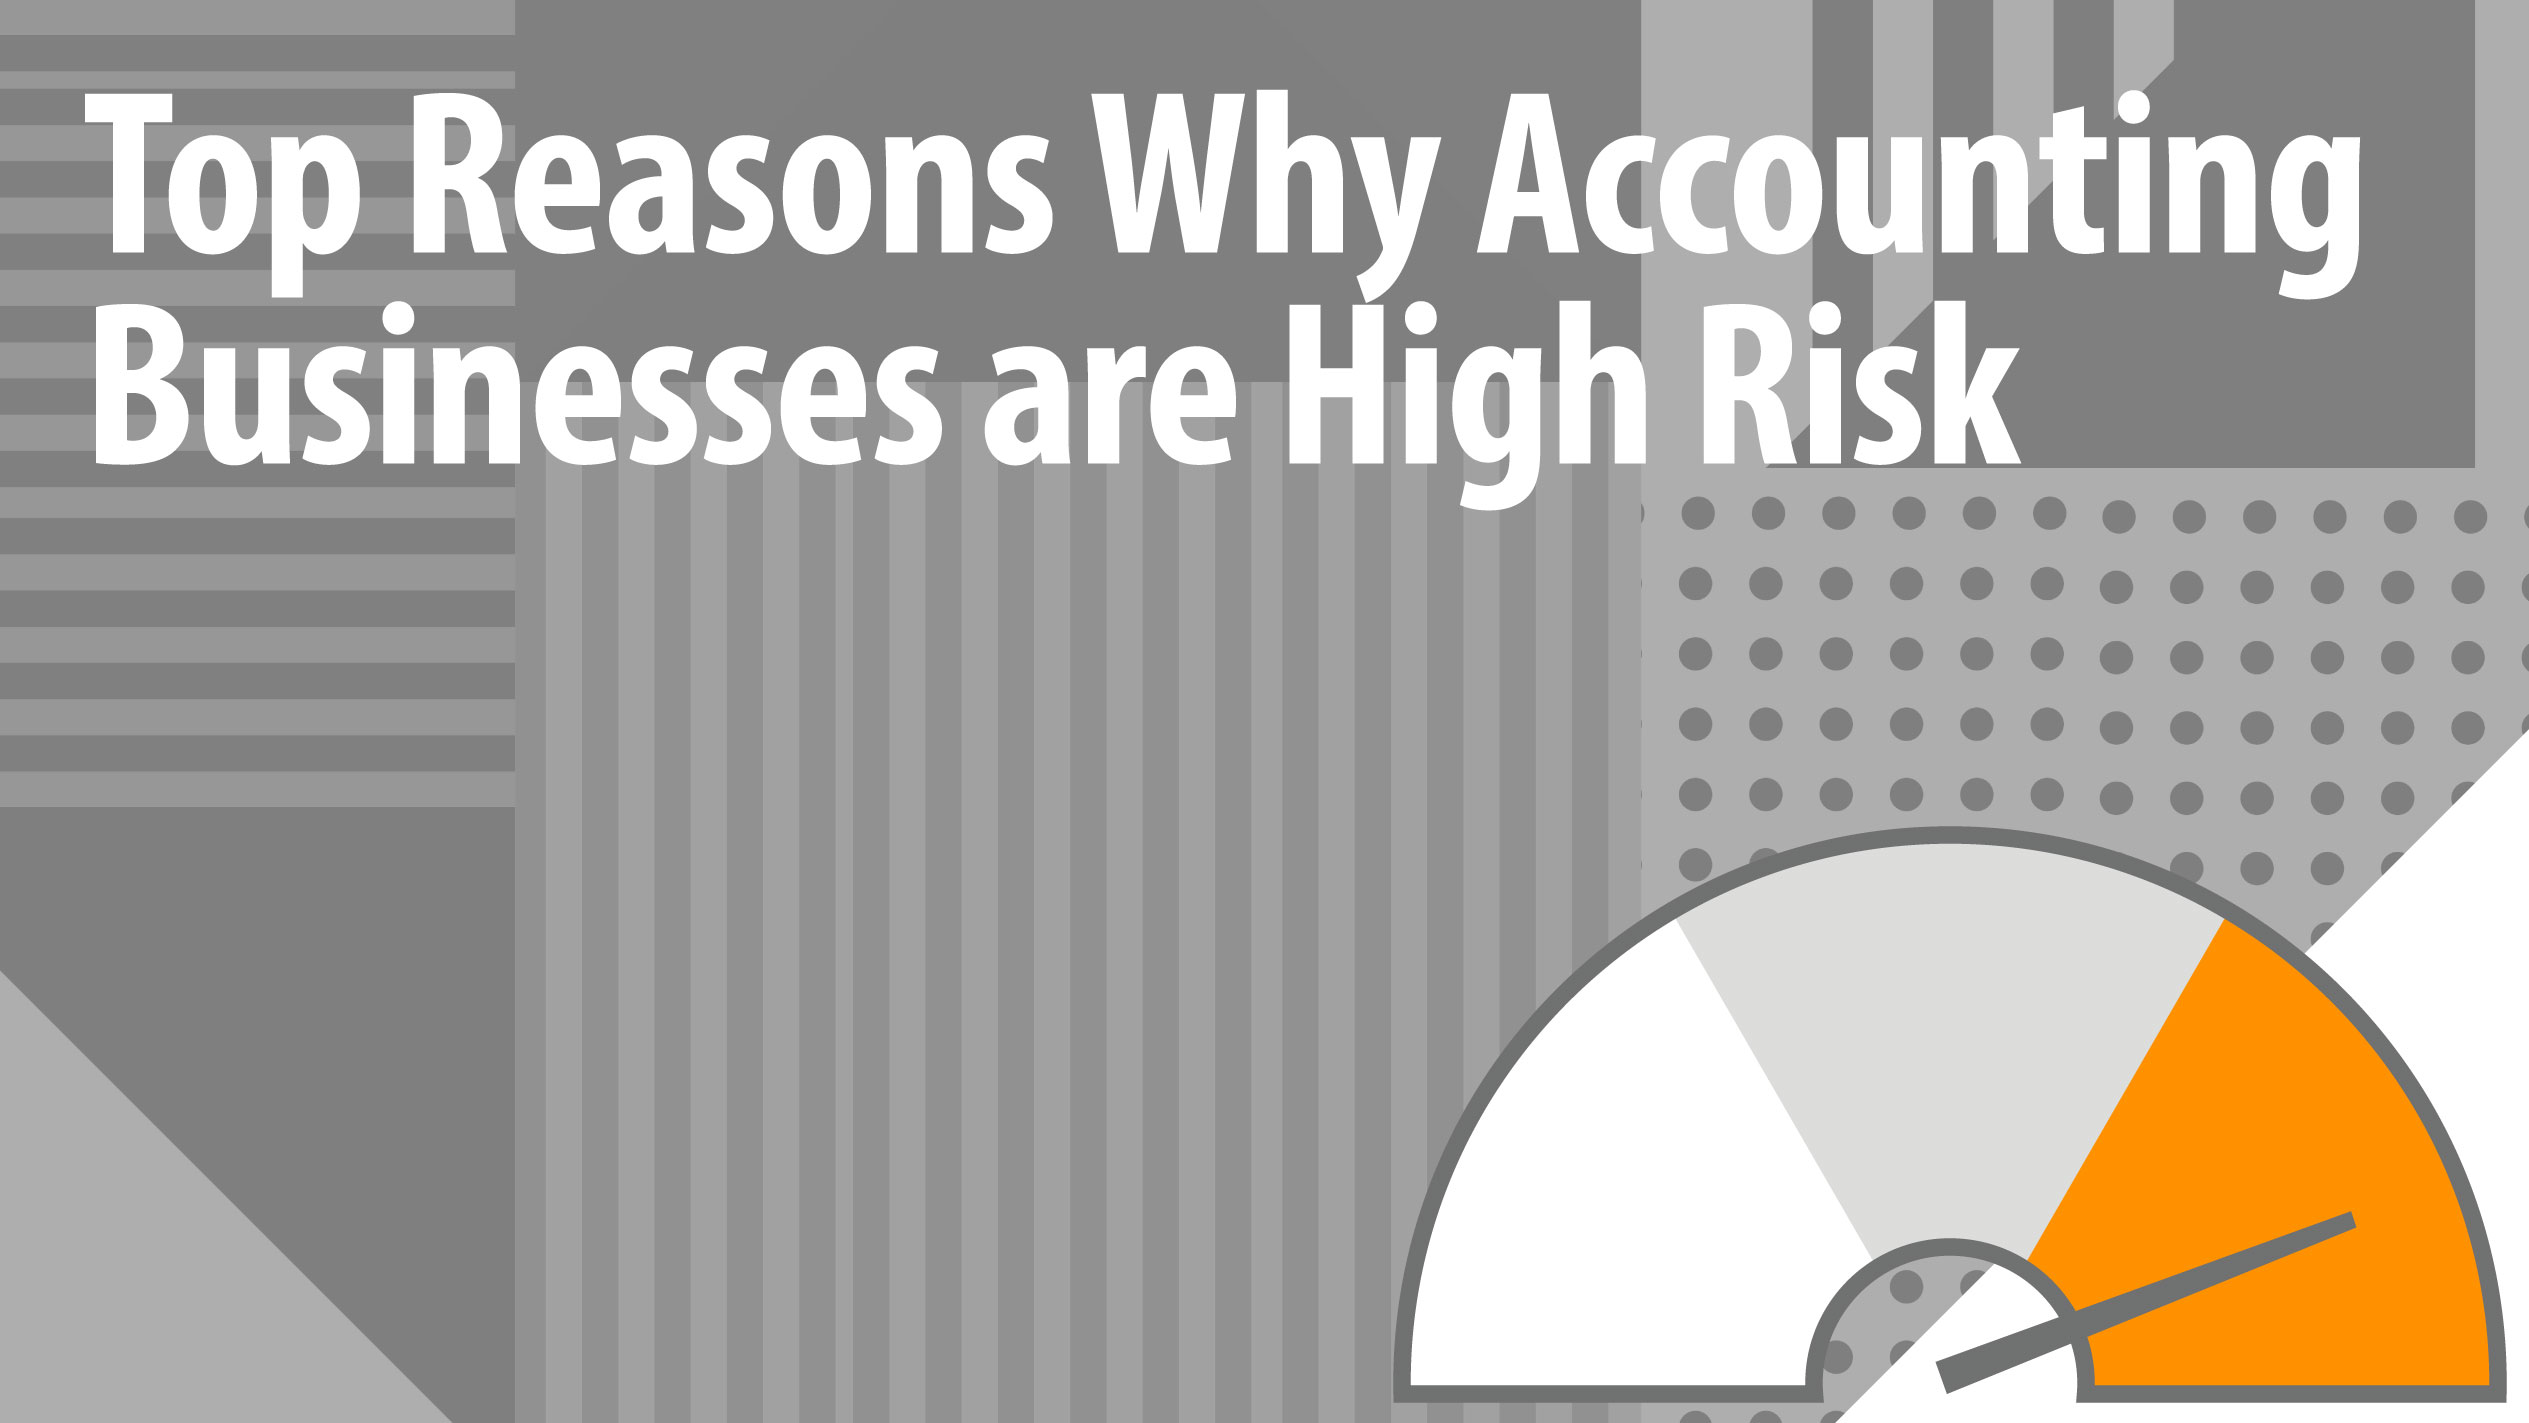 Top Reasons Why Accounting Businesses are High Risk